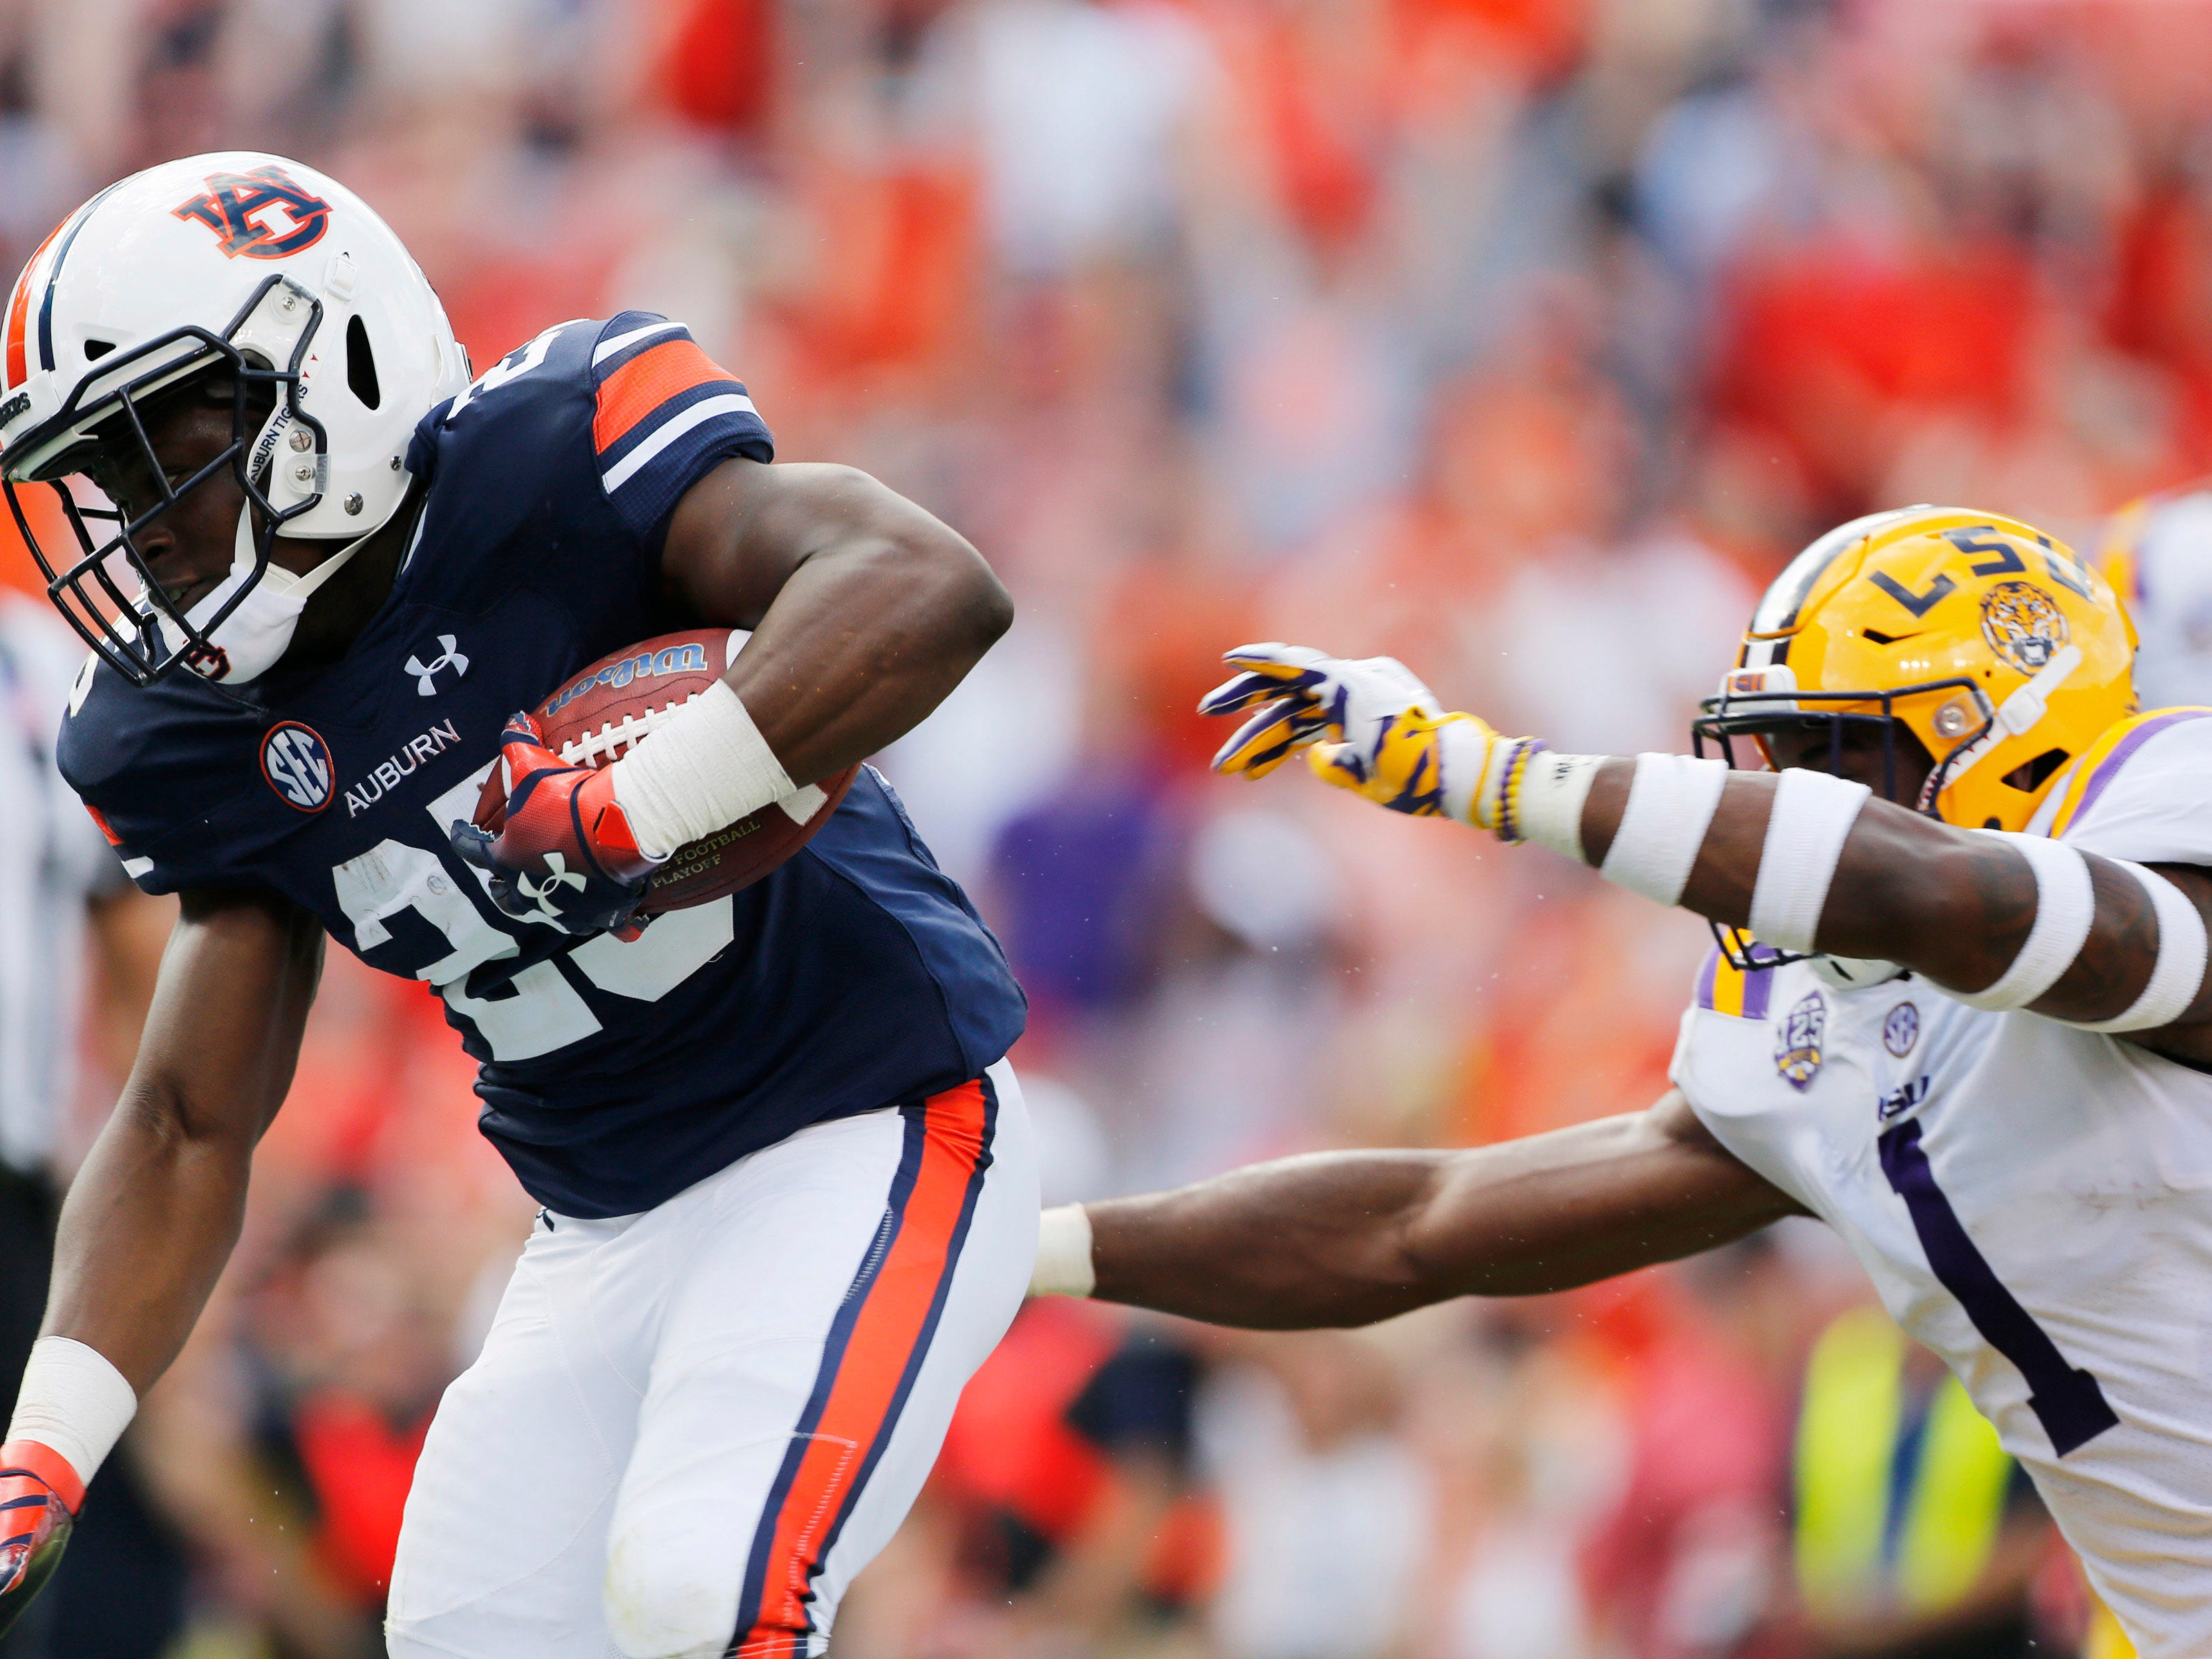 Sep 15, 2018; Auburn, AL, USA; Auburn Tigers running back Shaun Shivers (25) gets past LSU Tigers cornerback Kelvin Joseph (1) and scores a touchdown during the second quarter at Jordan-Hare Stadium. Mandatory Credit: John Reed-USA TODAY Sports